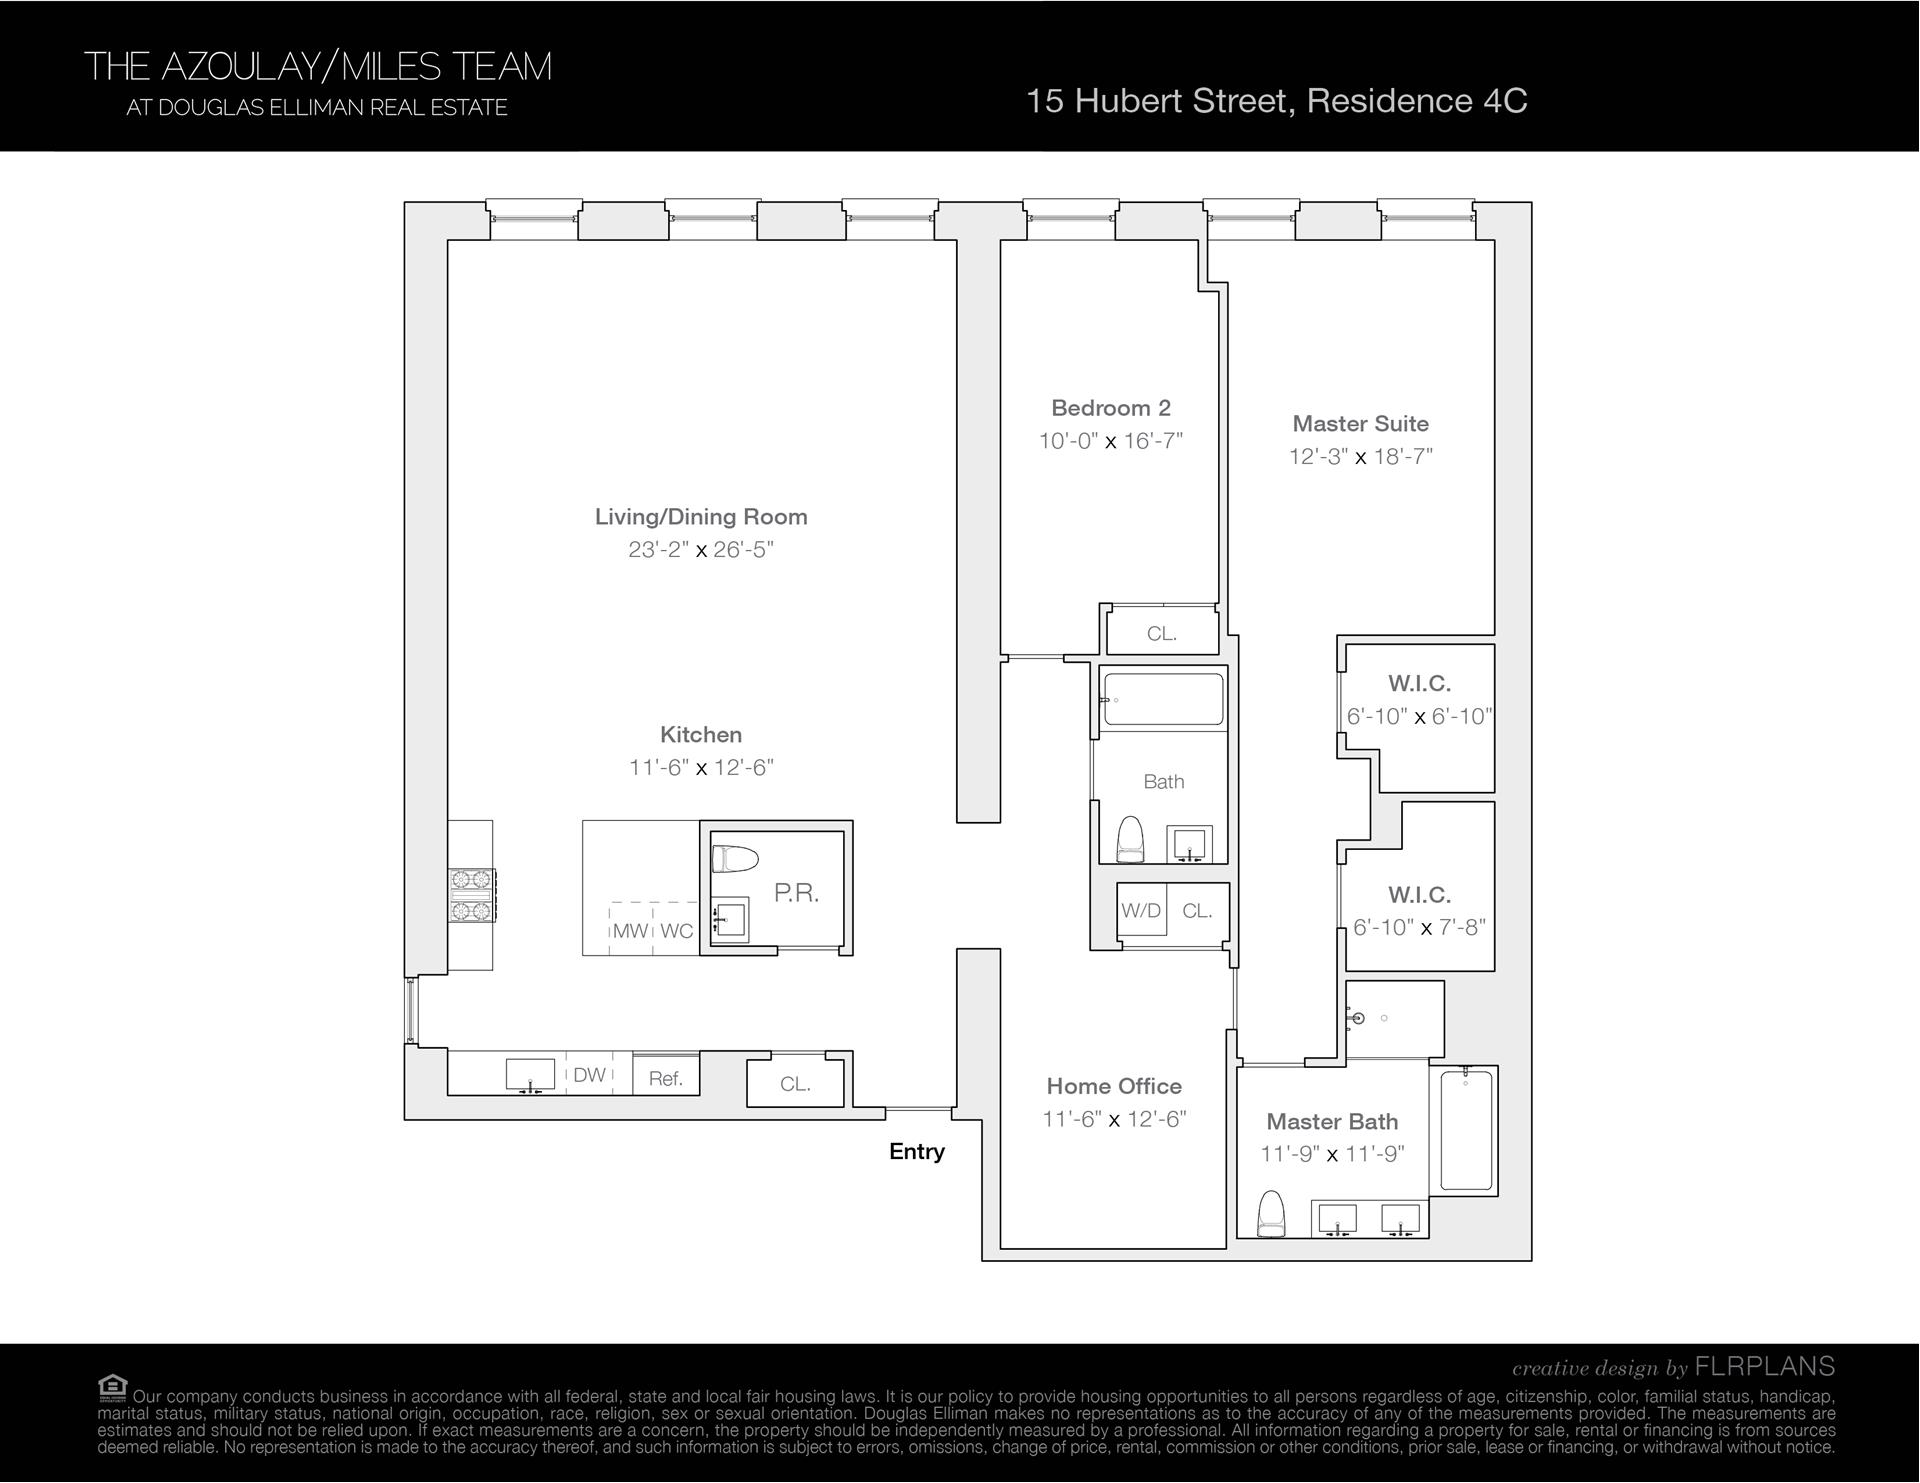 Floor plan of 15 Hubert St, 4C - TriBeCa, New York